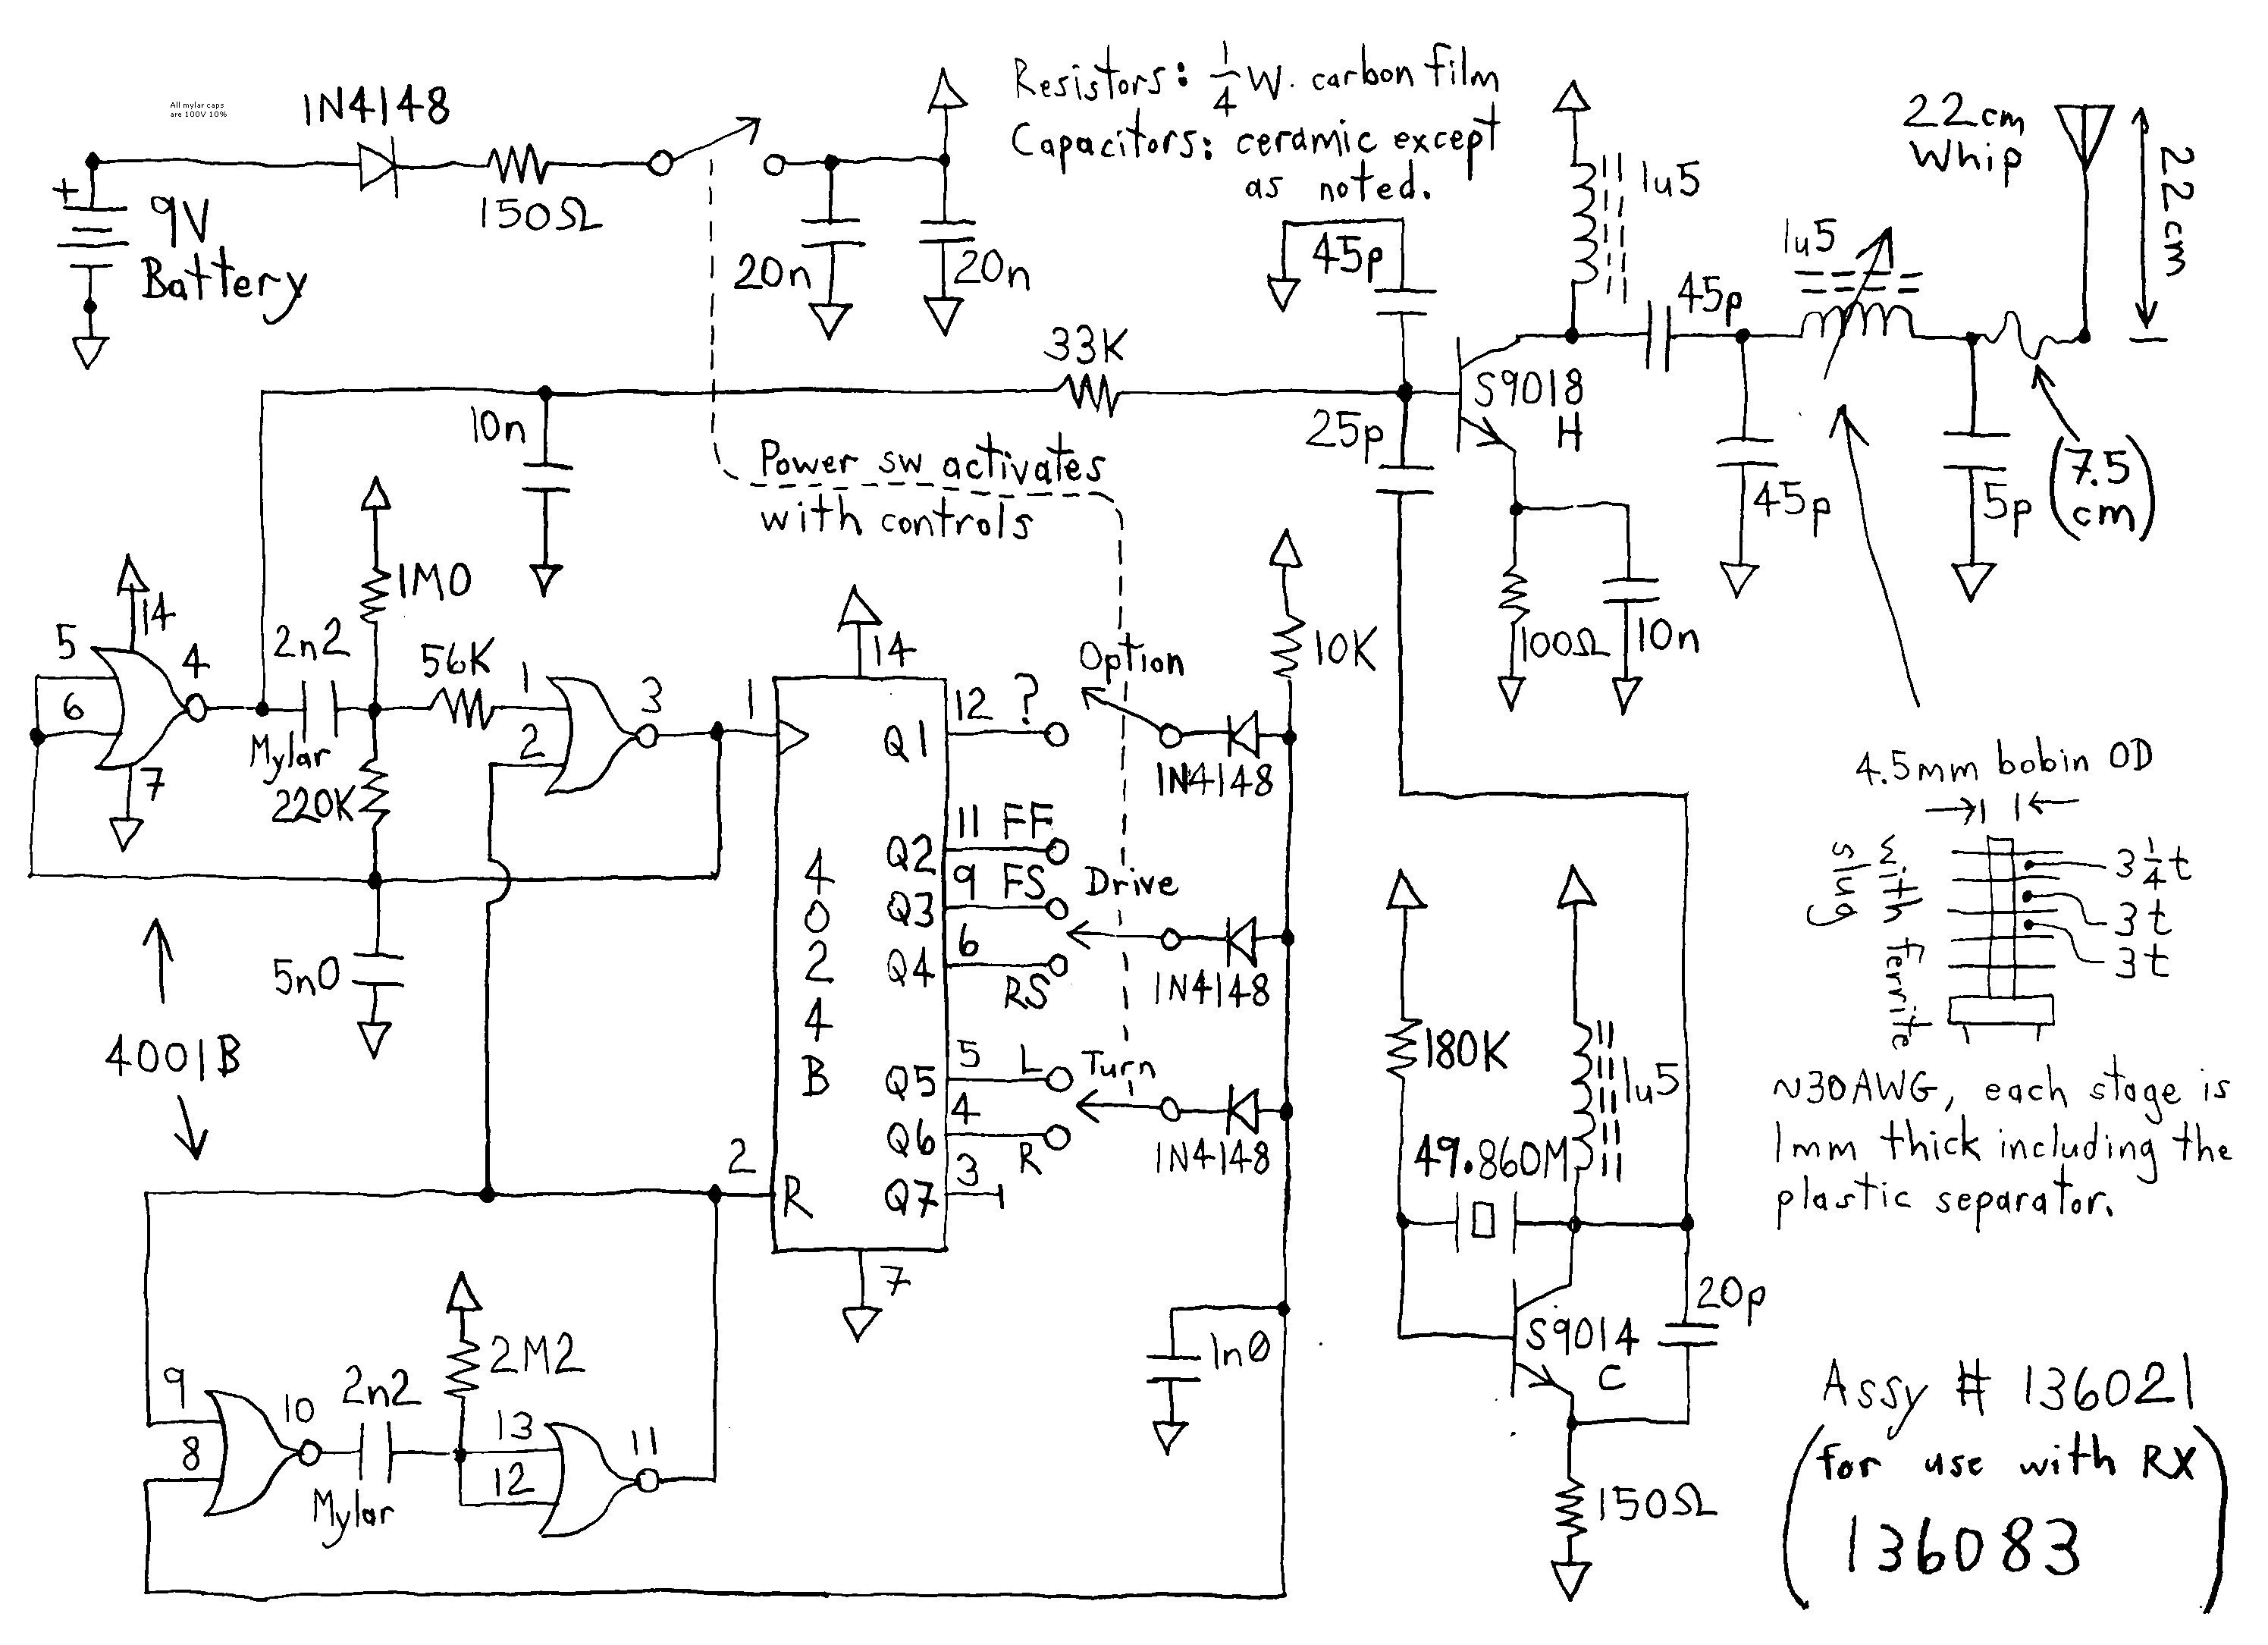 powerstat variable transformer wiring diagram powerstat variable autotransformer wiring diagram | free ... hvac transformer wiring diagram